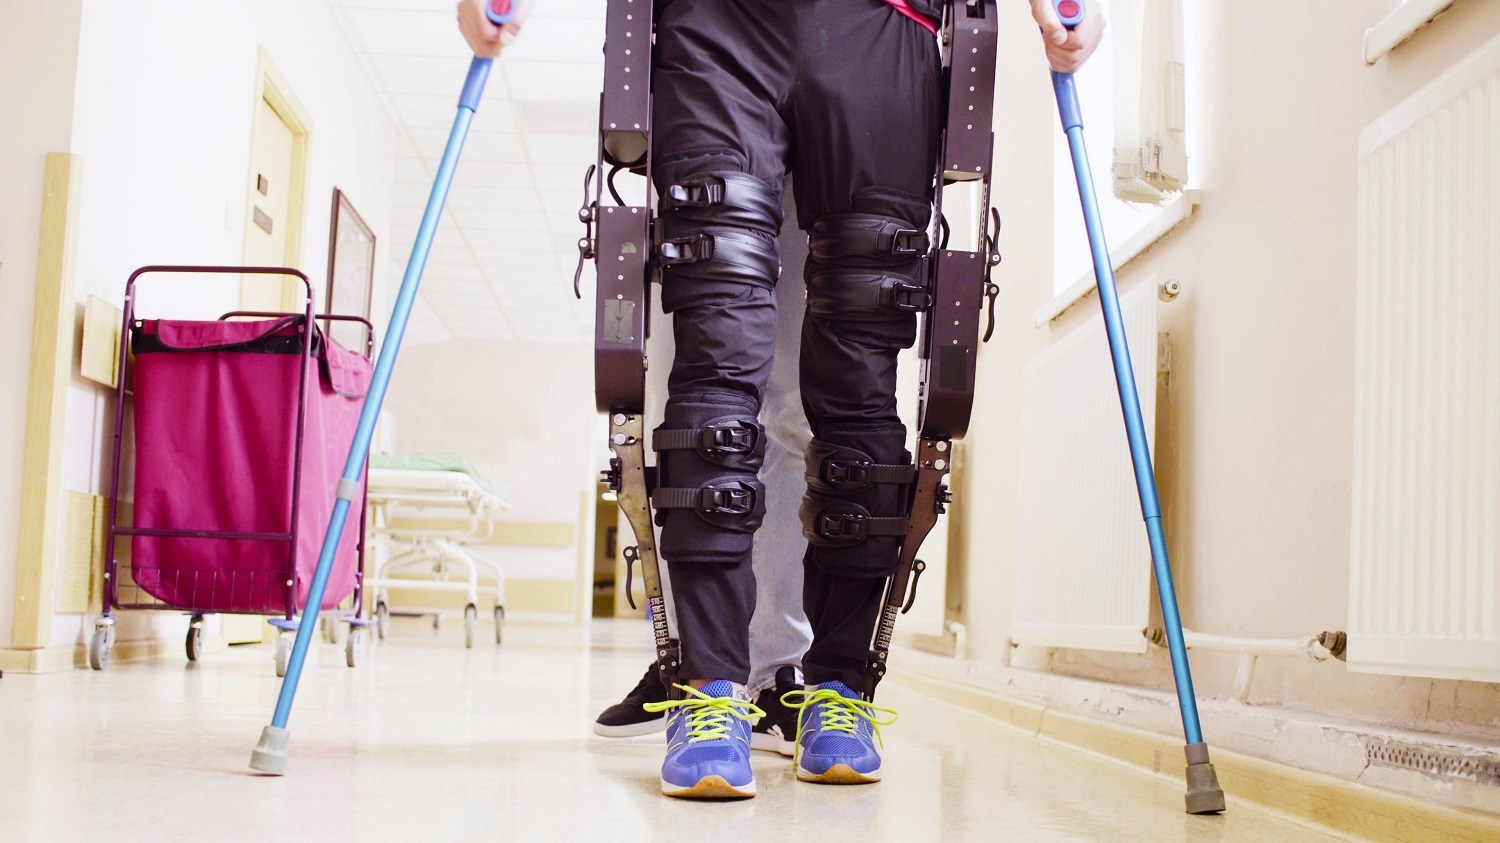 A person trying out the ReWalk exoskeleton